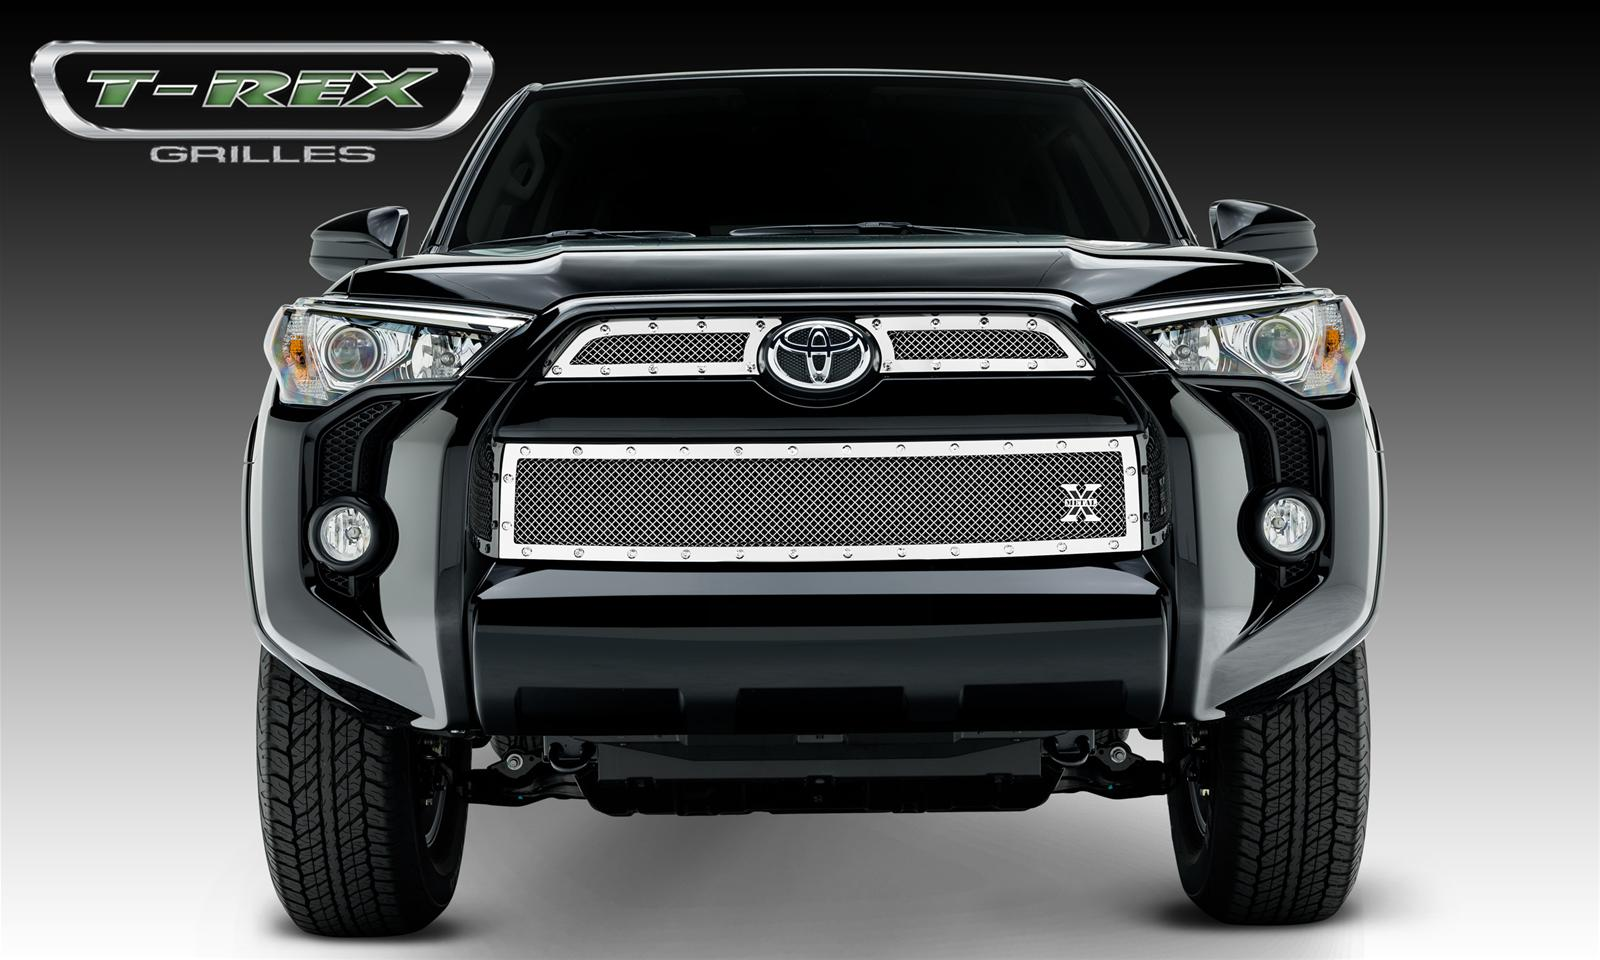 T-Rex 4Runner X-Metal Grille Insert - Limited (2014+) FREE SHIPPING